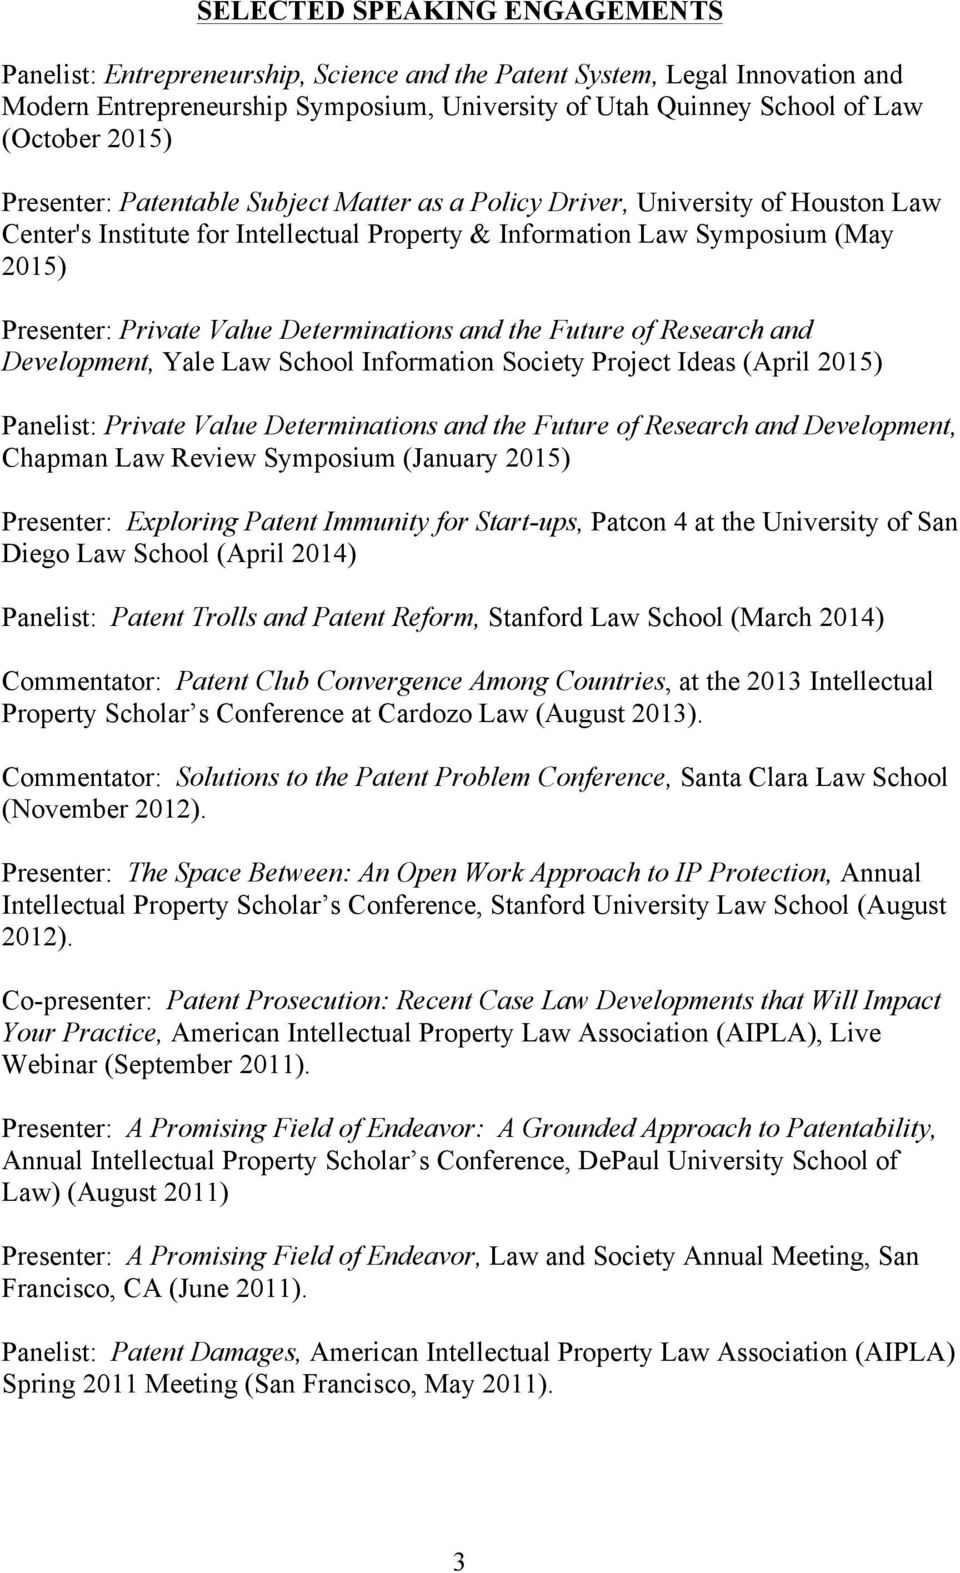 Determinations and the Future of Research and Development, Yale Law School Information Society Project Ideas (April 2015) Panelist: Private Value Determinations and the Future of Research and